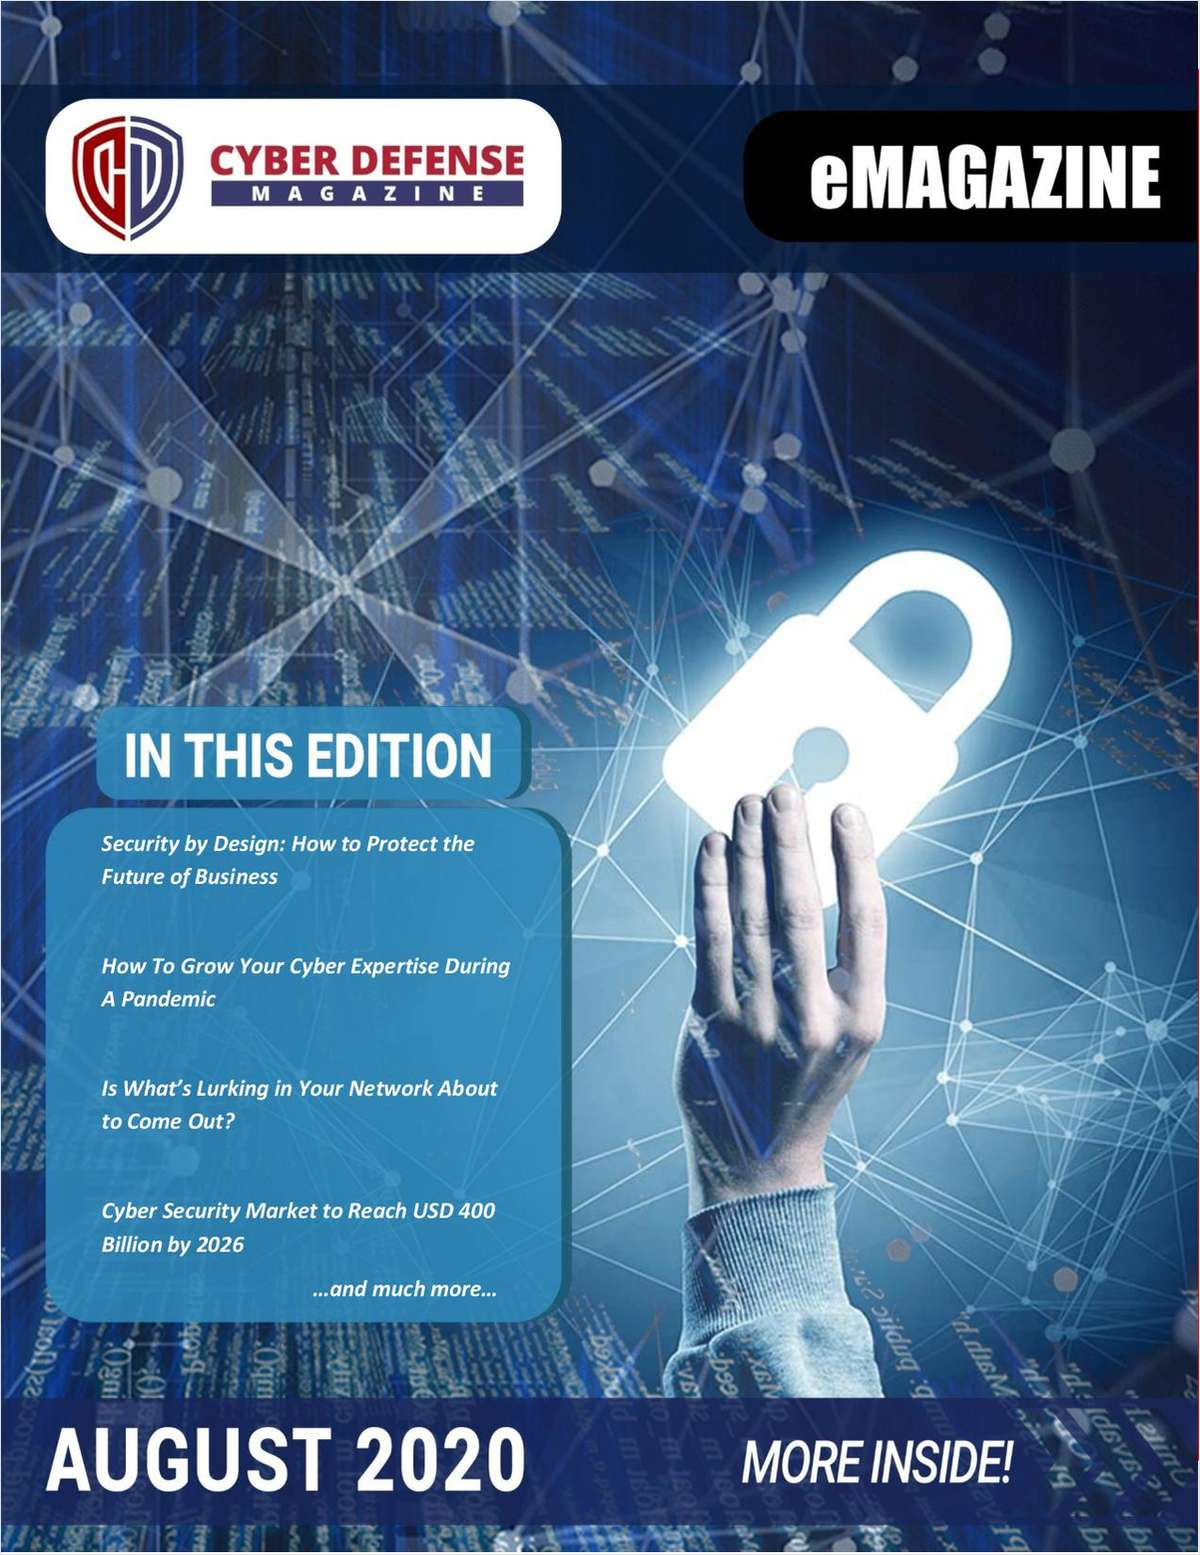 Cyber Defense Magazine – August 2020 has arrived. Enjoy it!